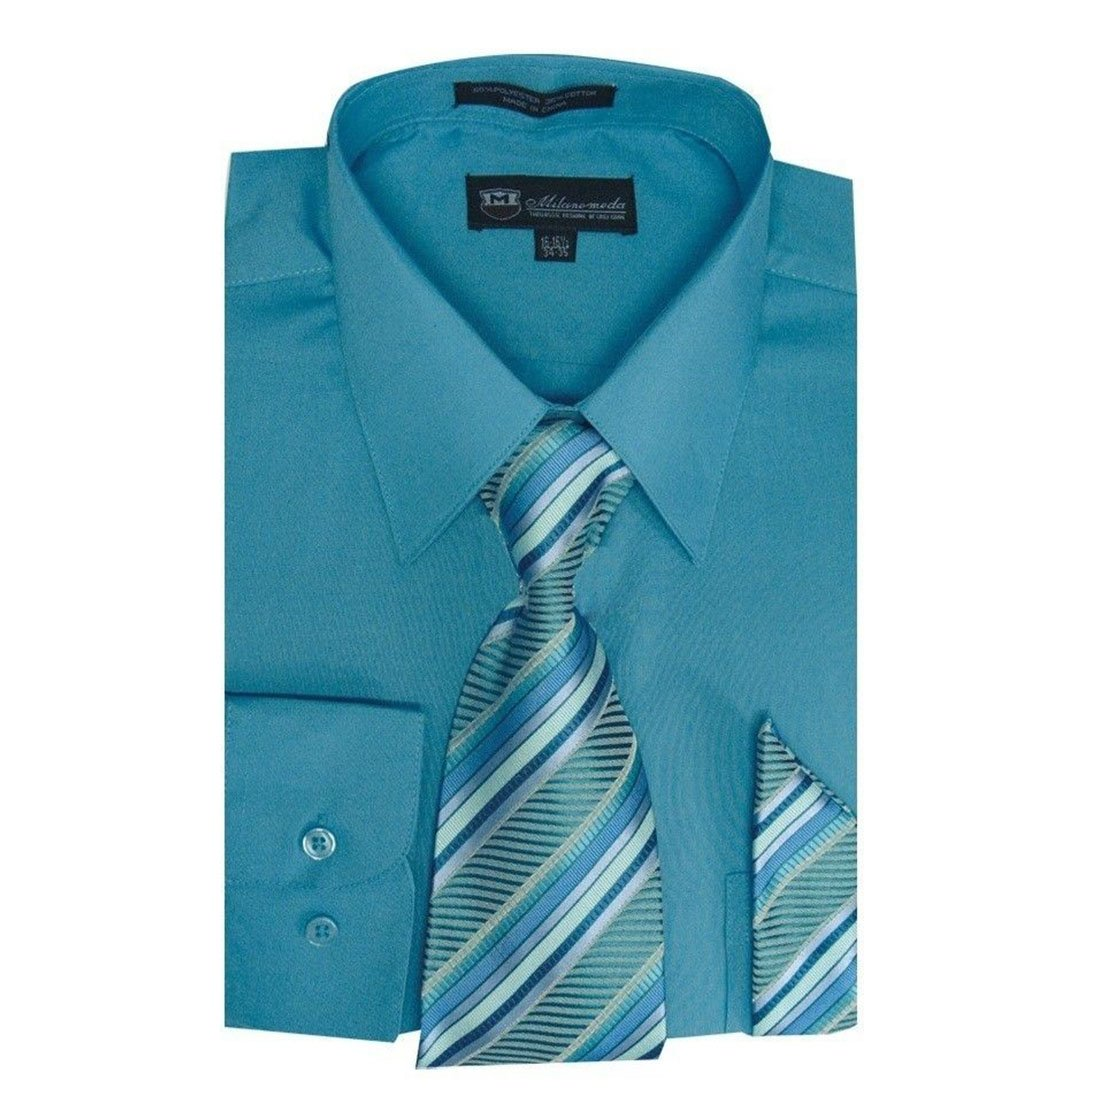 4386ec905 Milano Moda Men's Dress Shirt with Tie/Handkerchief HLSG21A New York Brand  at Amazon Men's Clothing store: